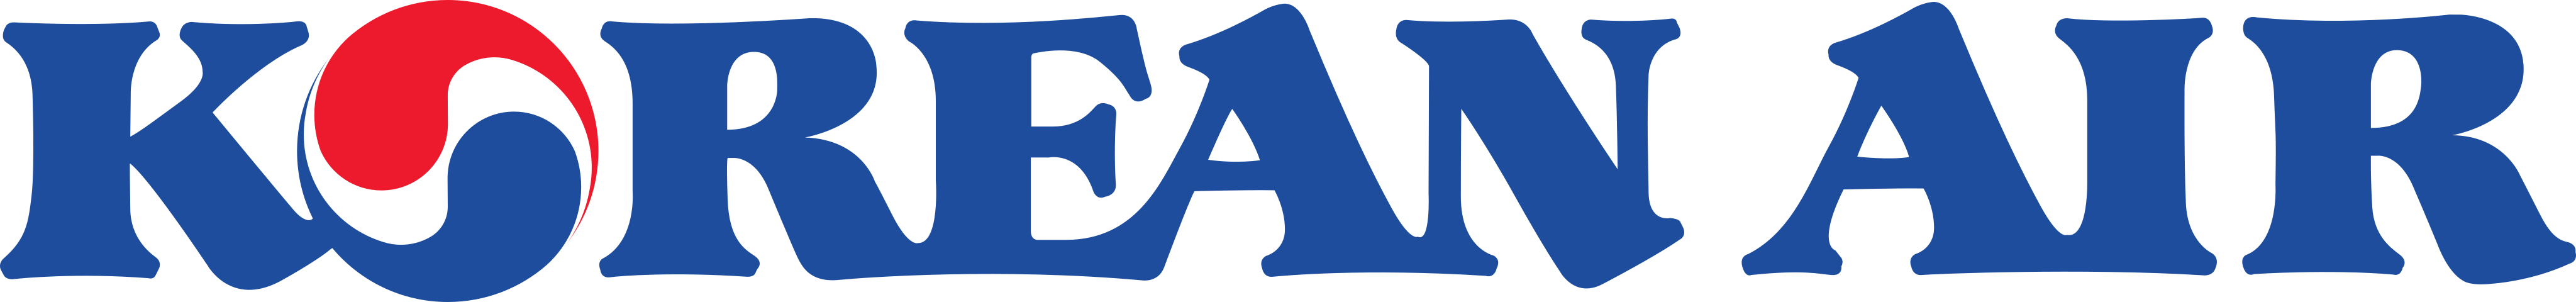 Korea Air Logo.